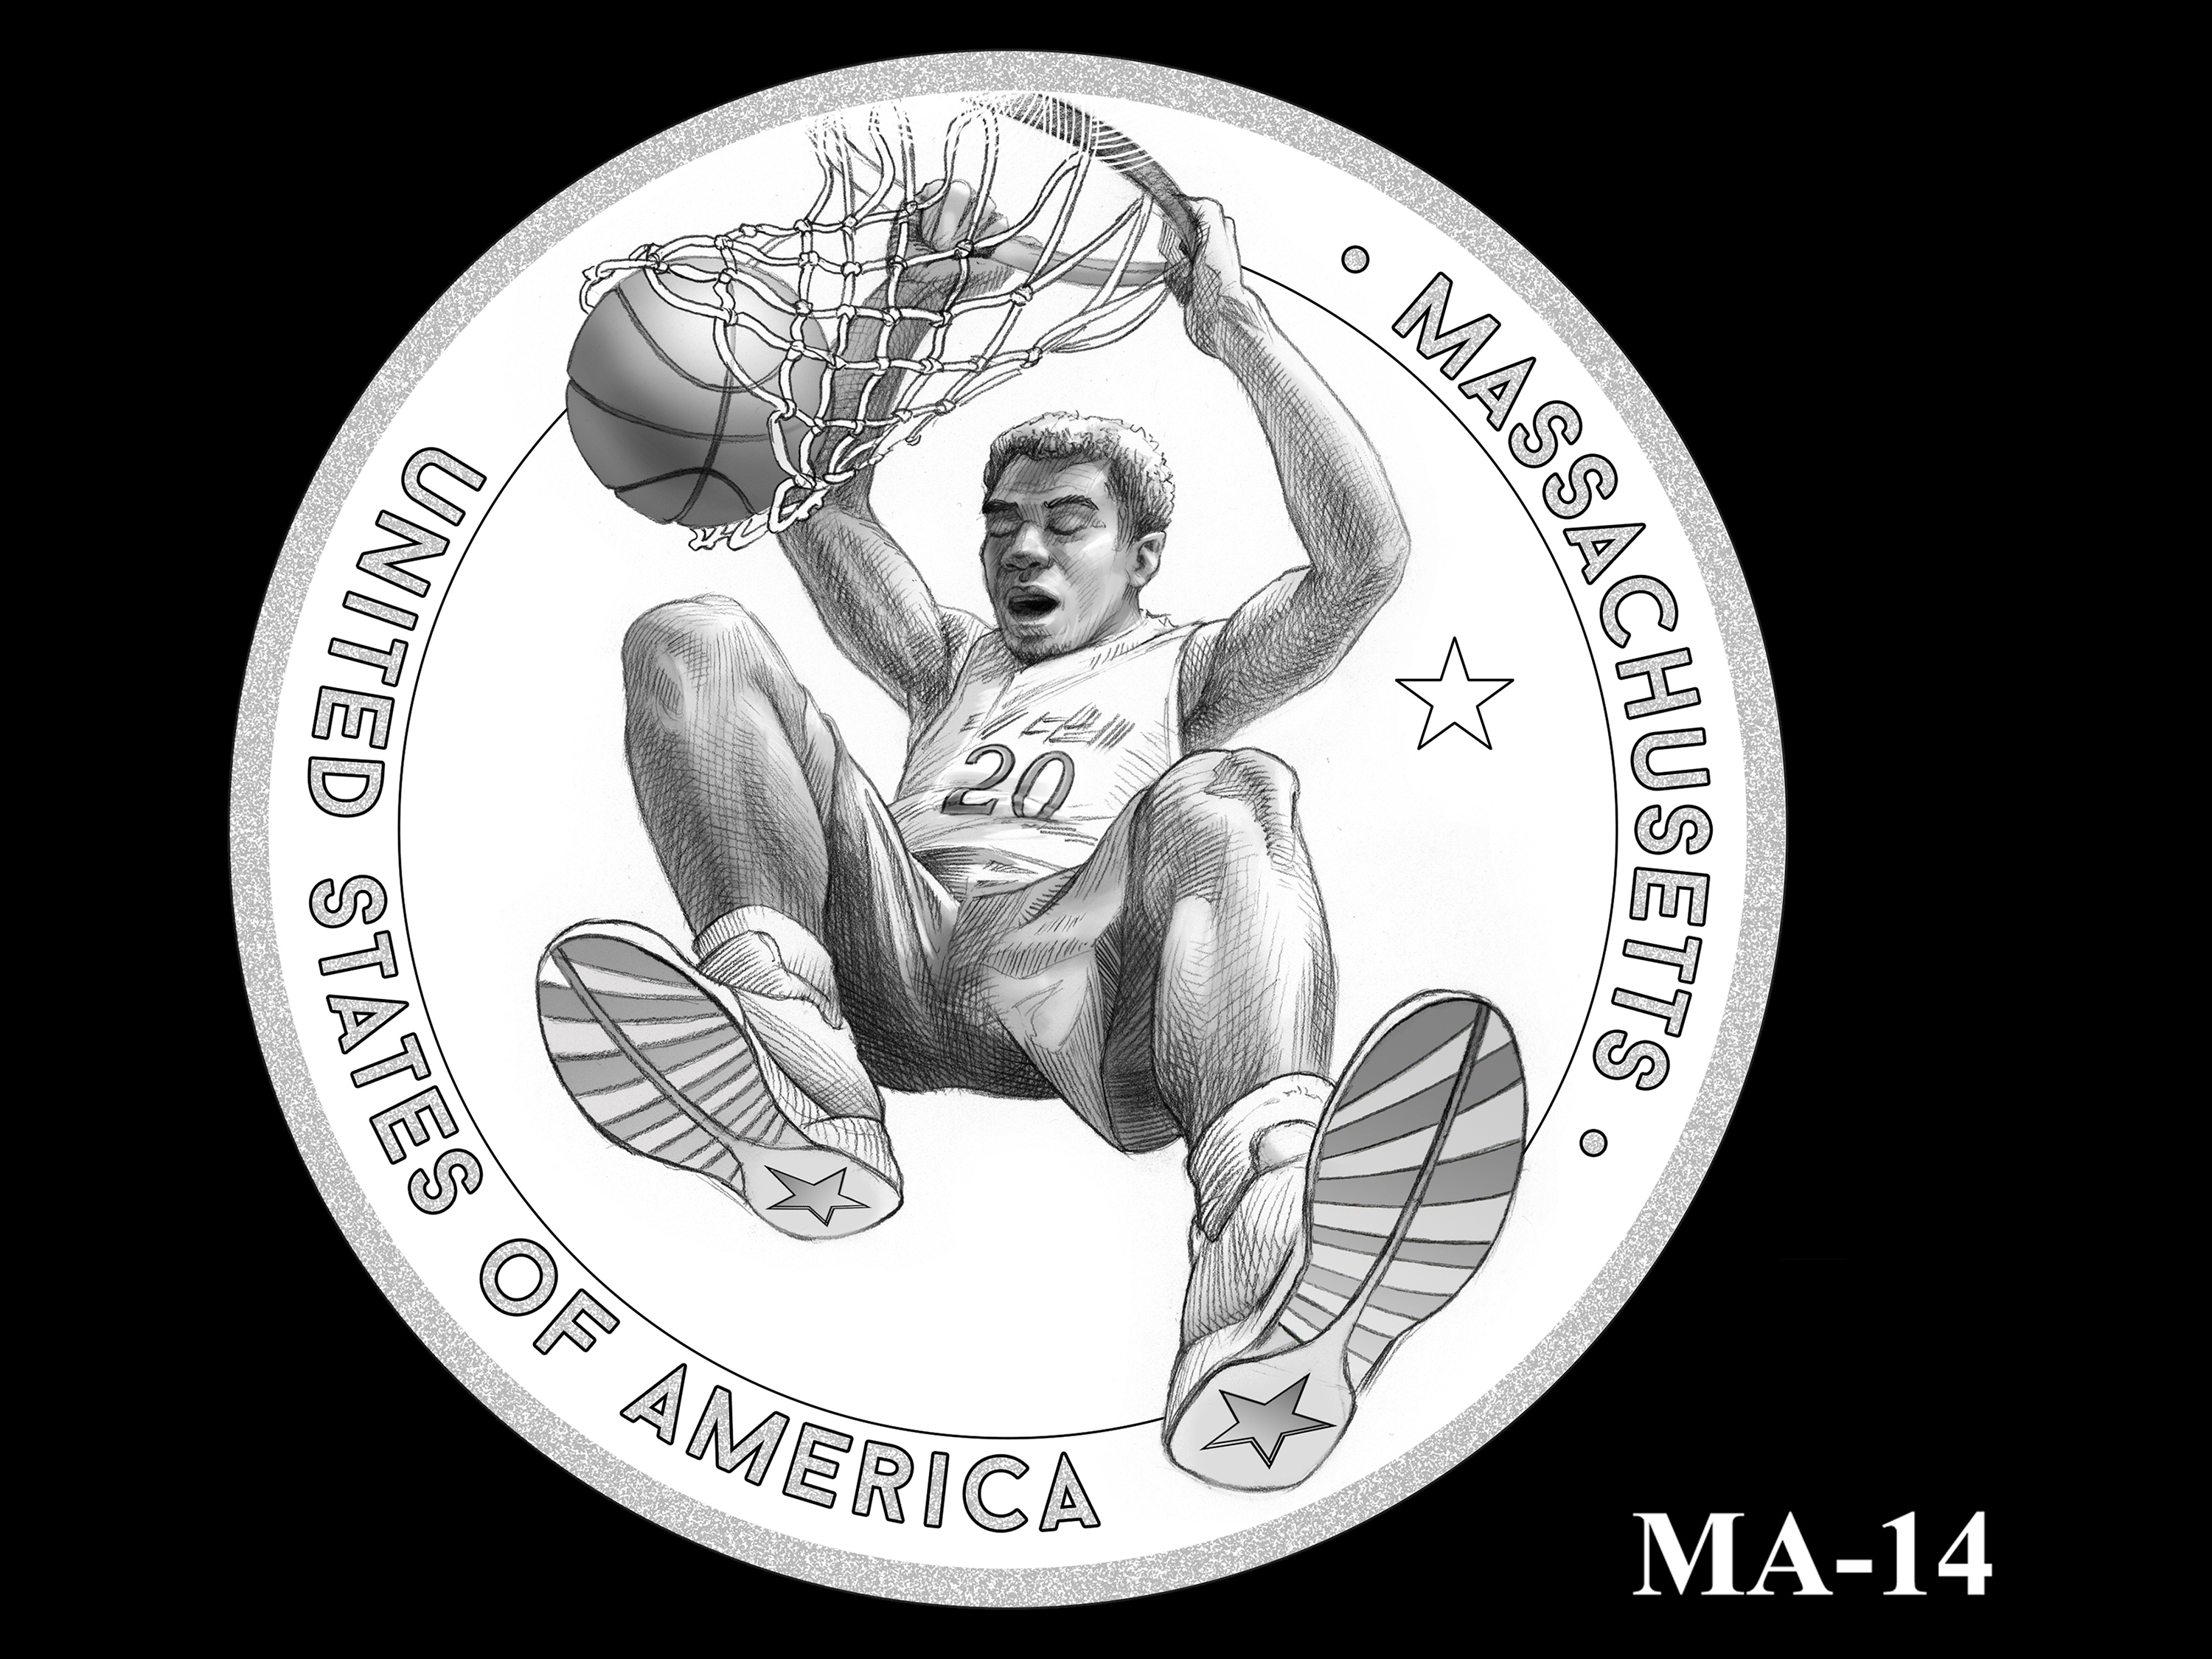 MA-14 -- 2020 American Innovation $1 Coin - Massachusetts